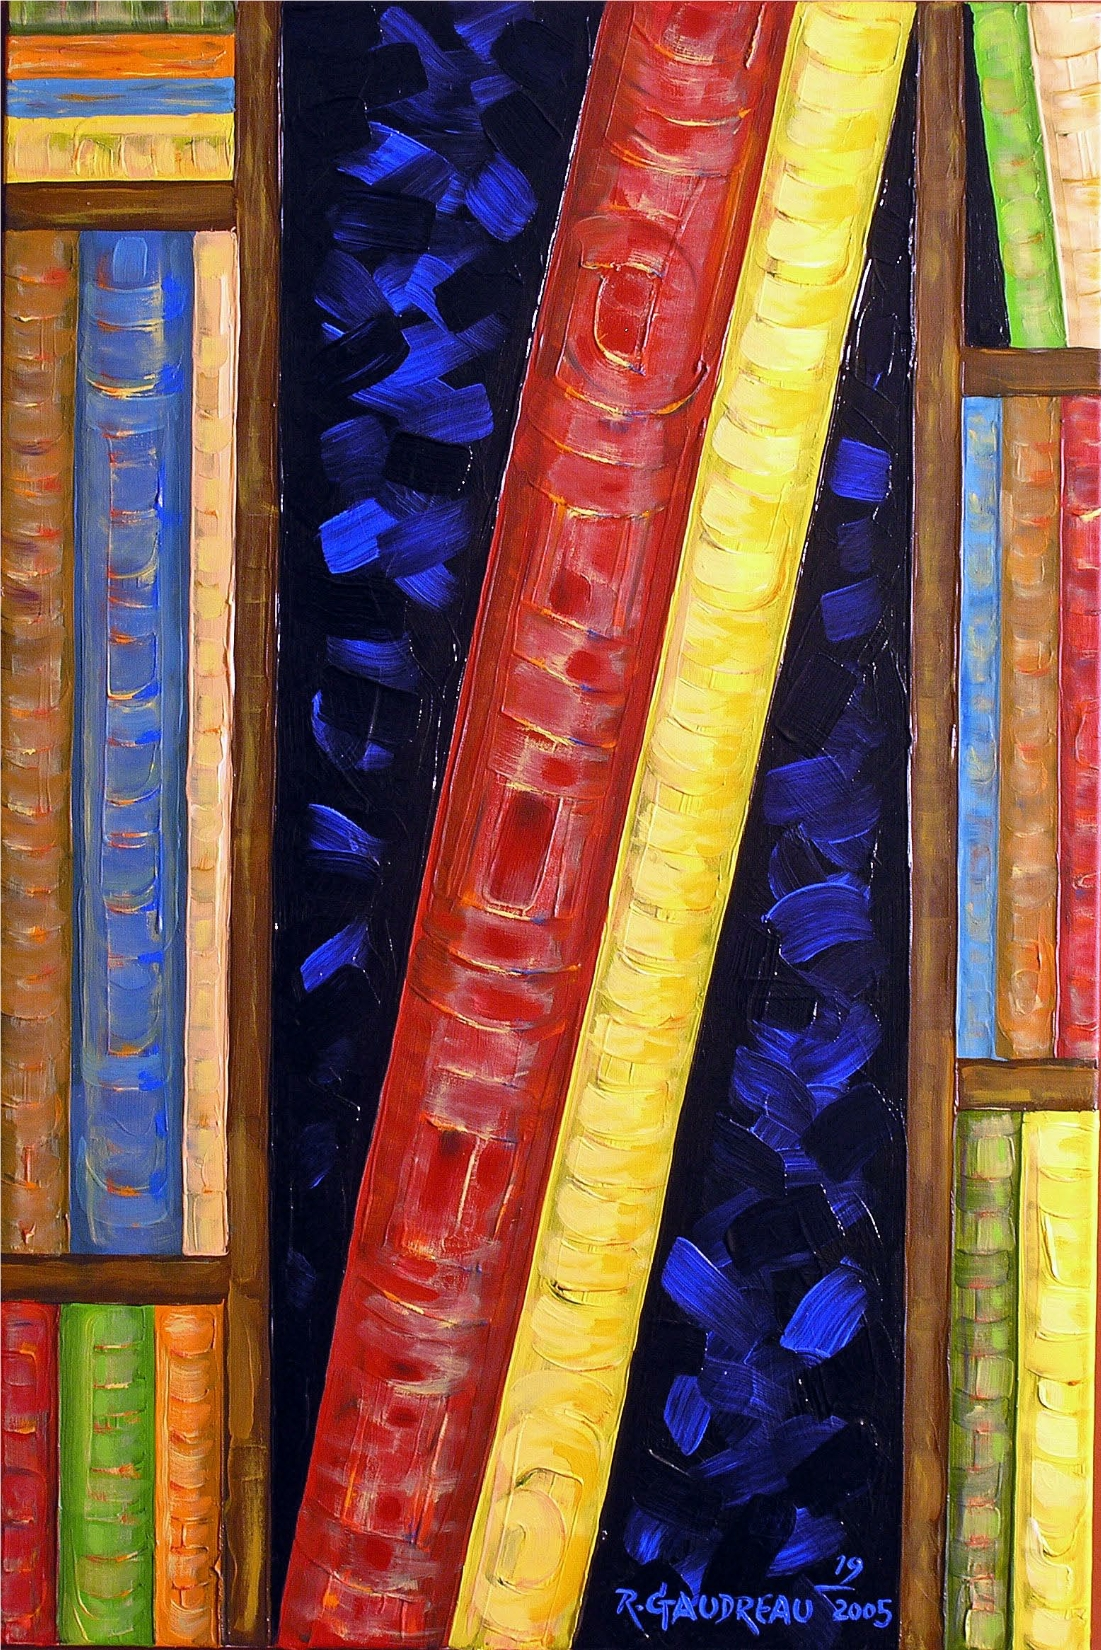 19Books 2006 oil on canvas 36 x 24 inches